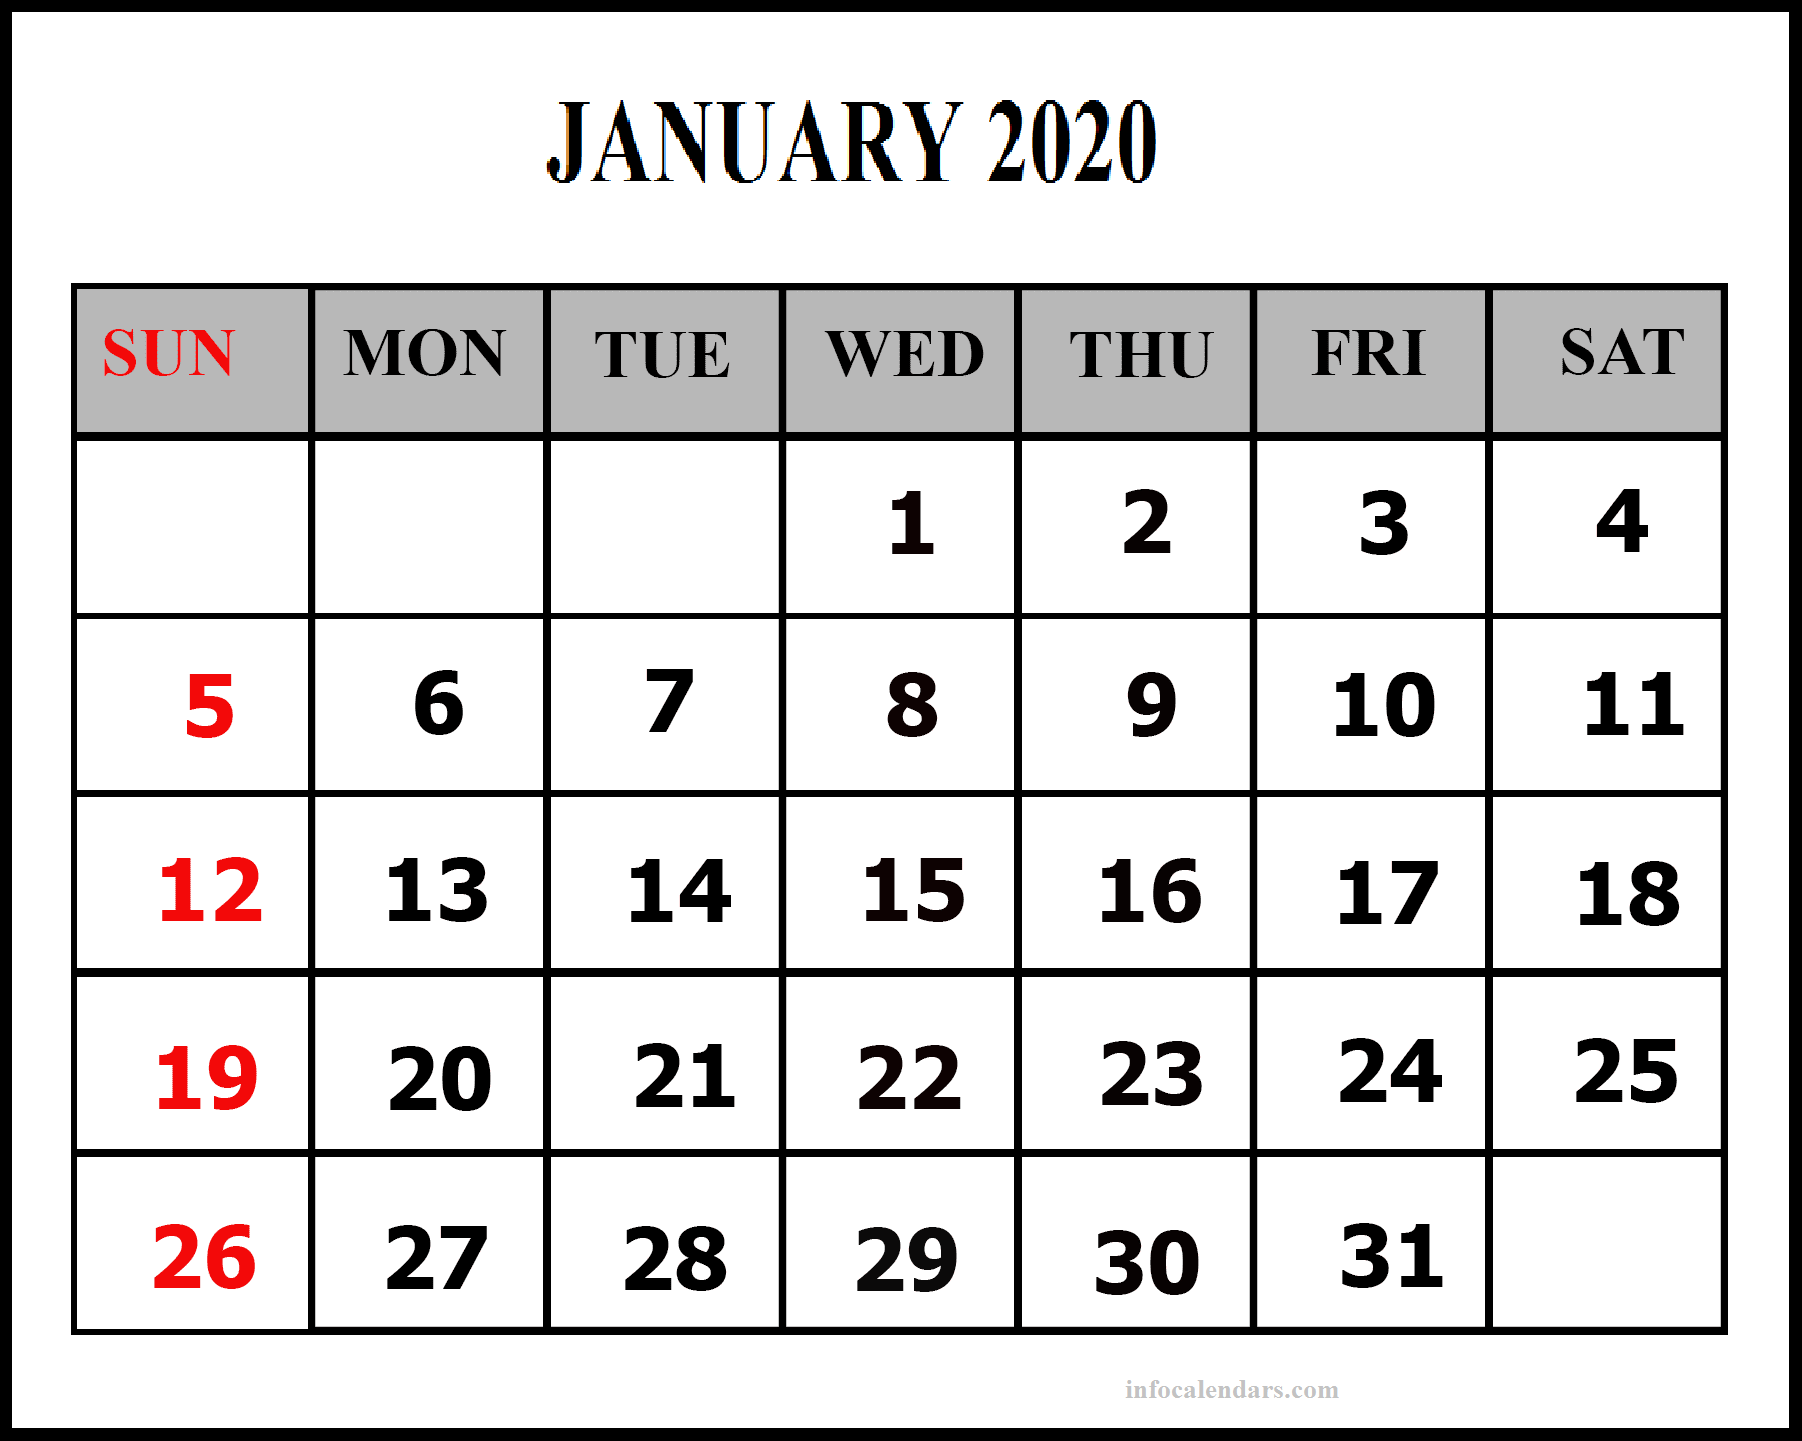 Blank January 2020 Calendar With Holidays